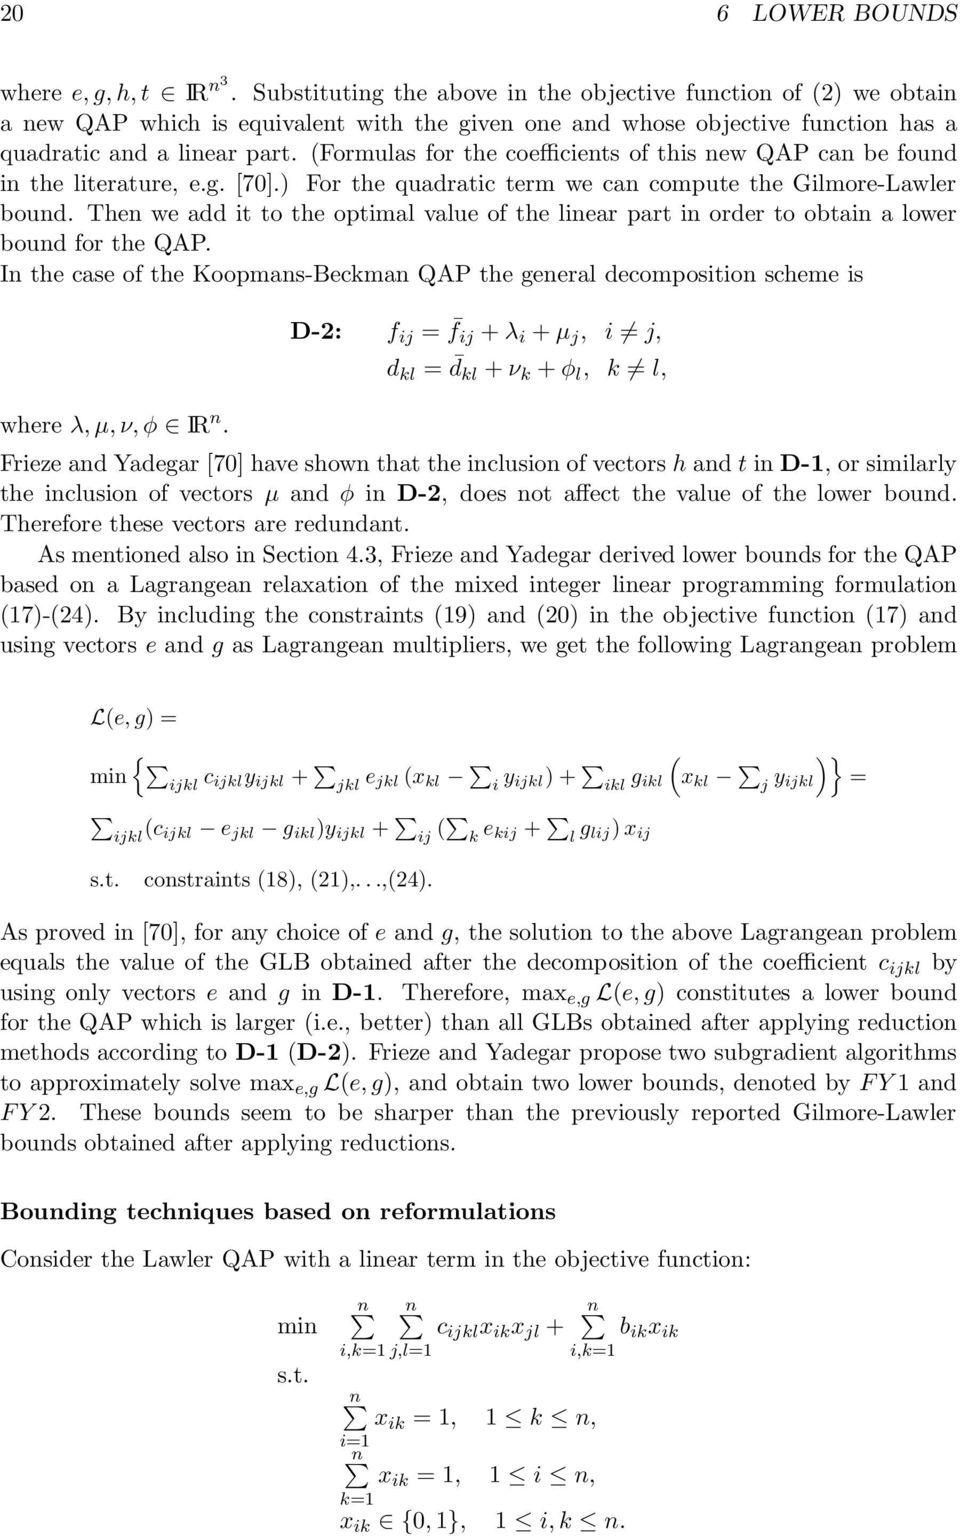 (Formulas for the coefficients of this new QAP can be found in the literature, e.g. [70].) For the quadratic term we can compute the Gilmore-Lawler bound.